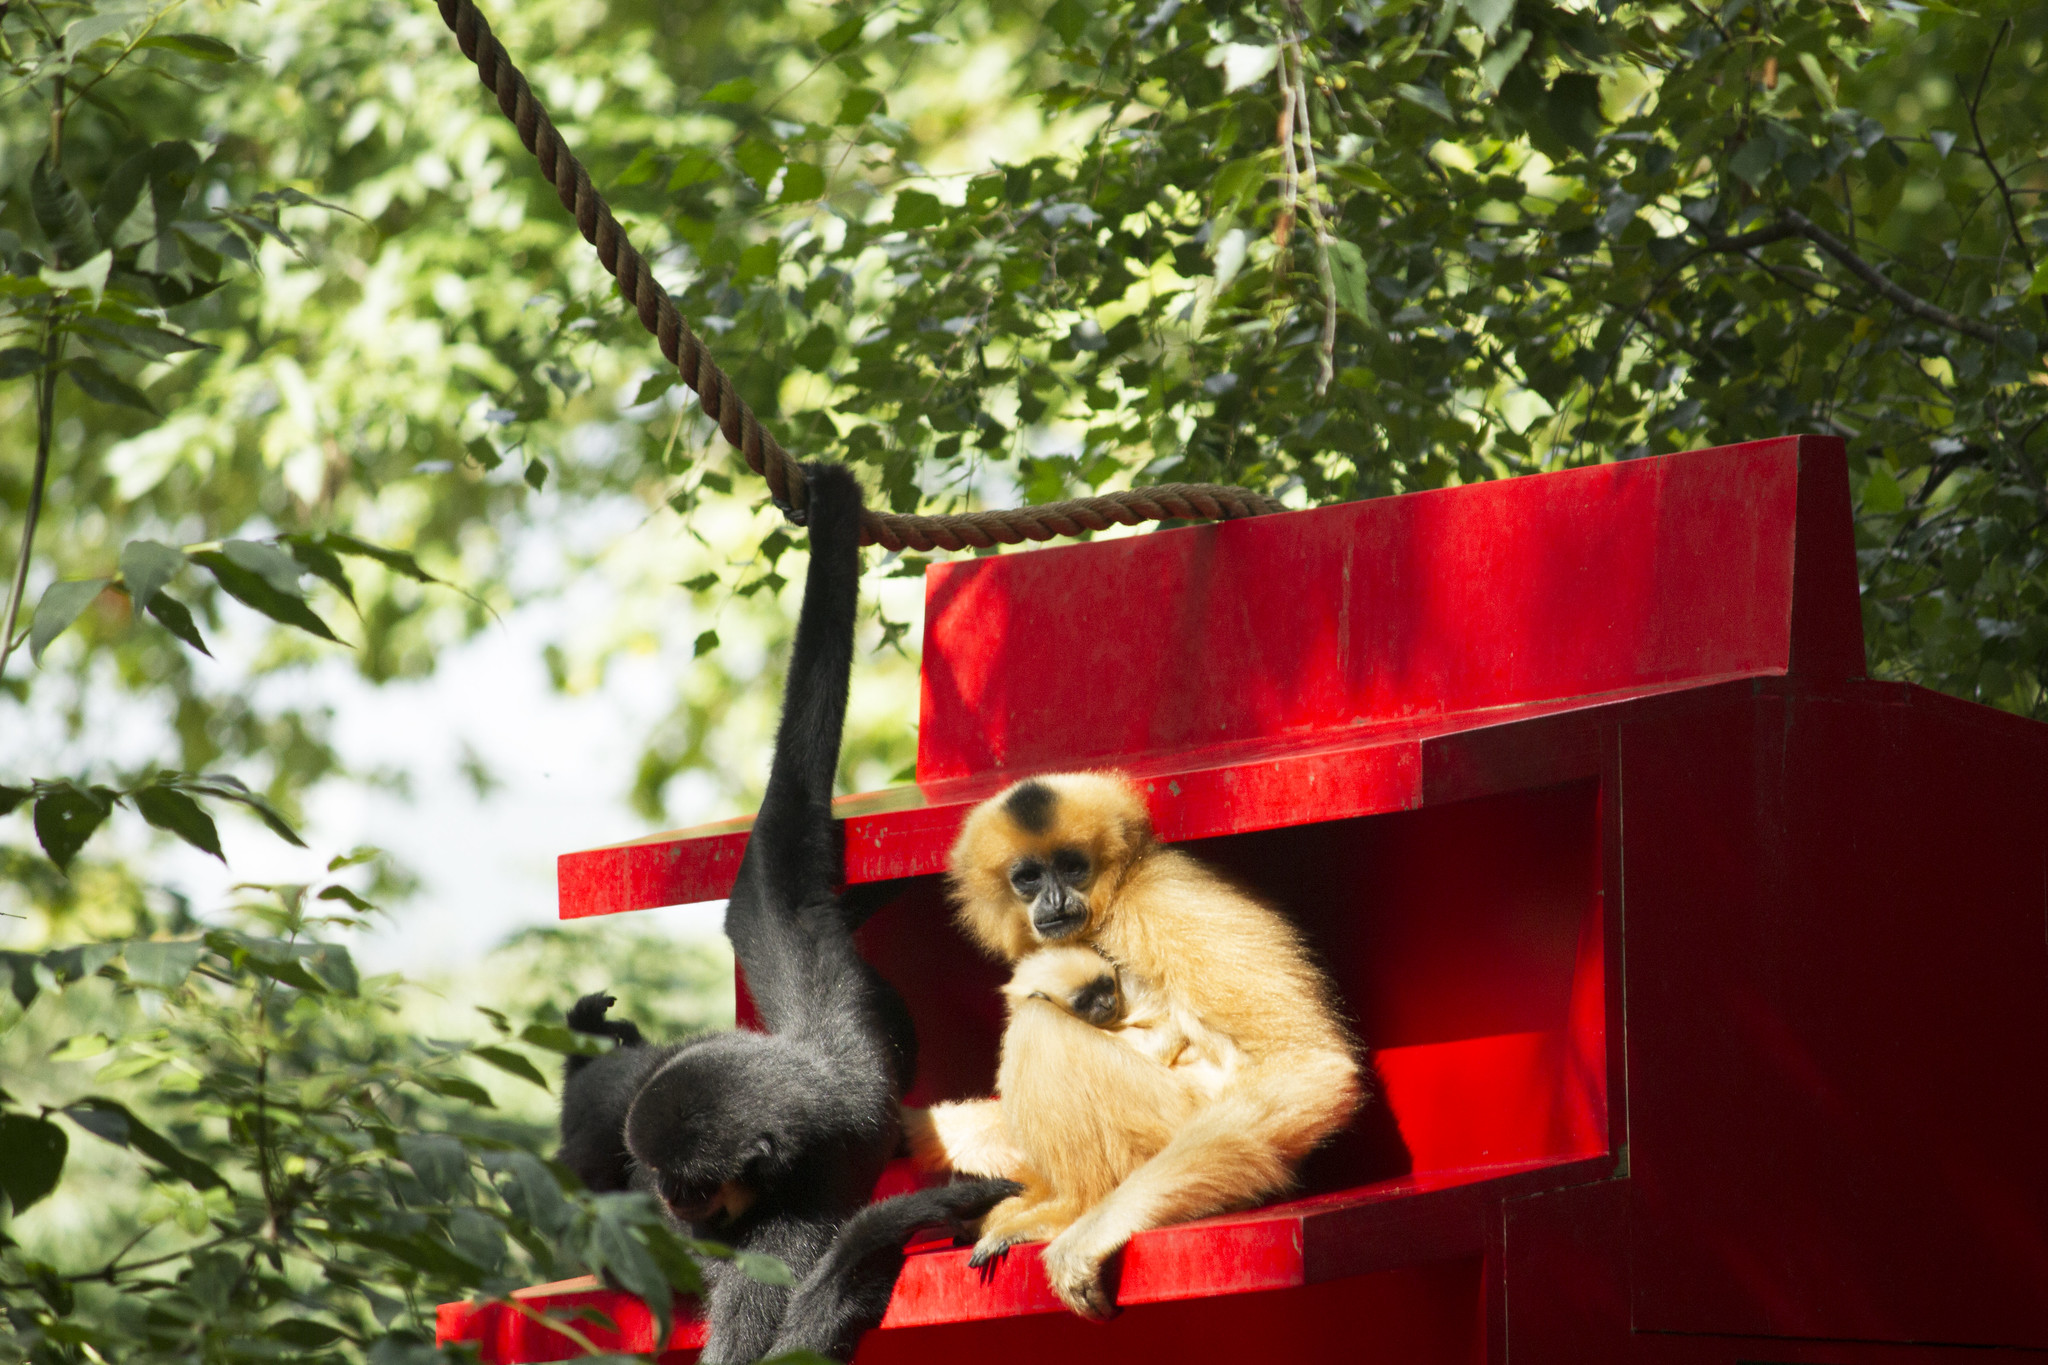 Yellow-cheeked gibbons with newborn - Artis Royal Zoo